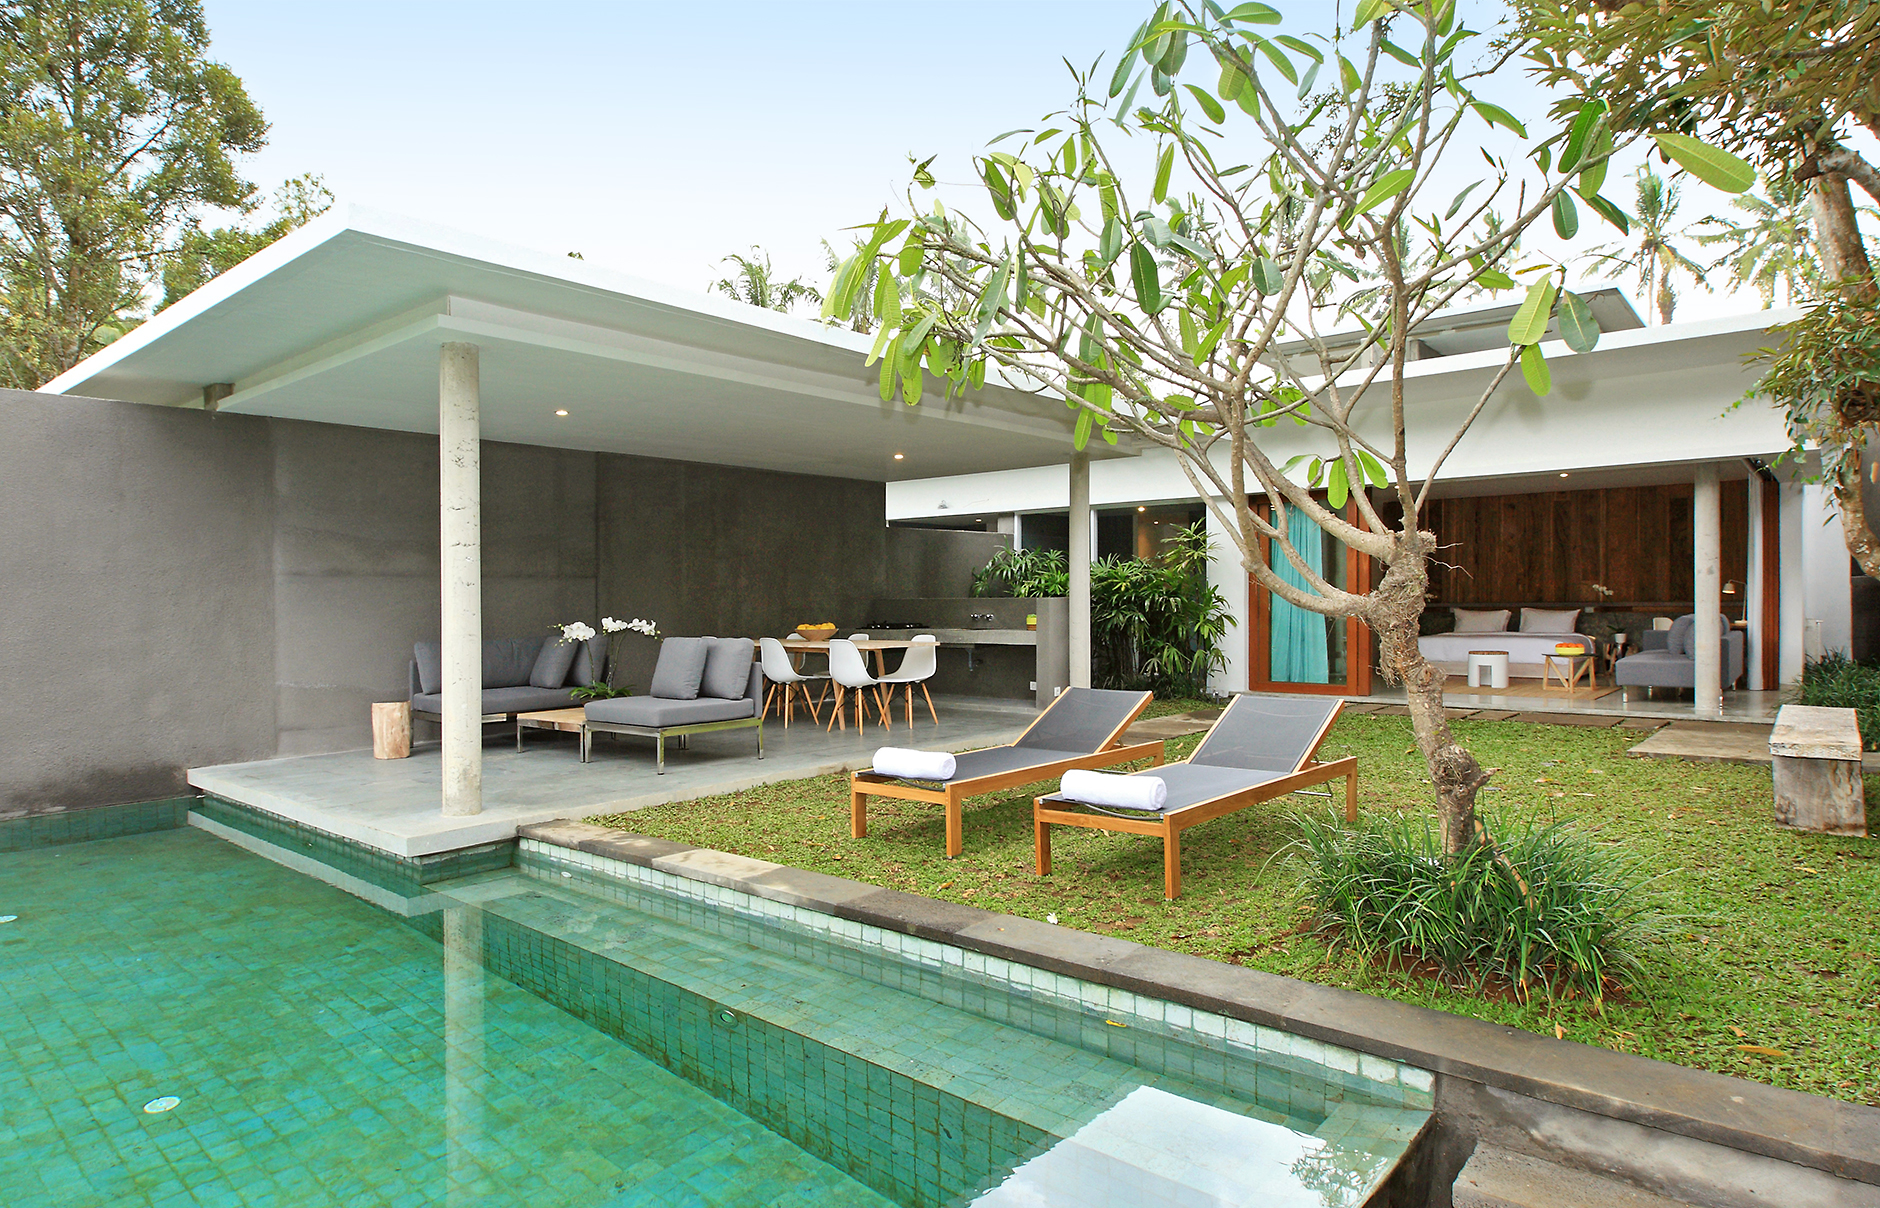 The new bali in ubud aria villas low key luxury luxury for Design boutique hotel ubud